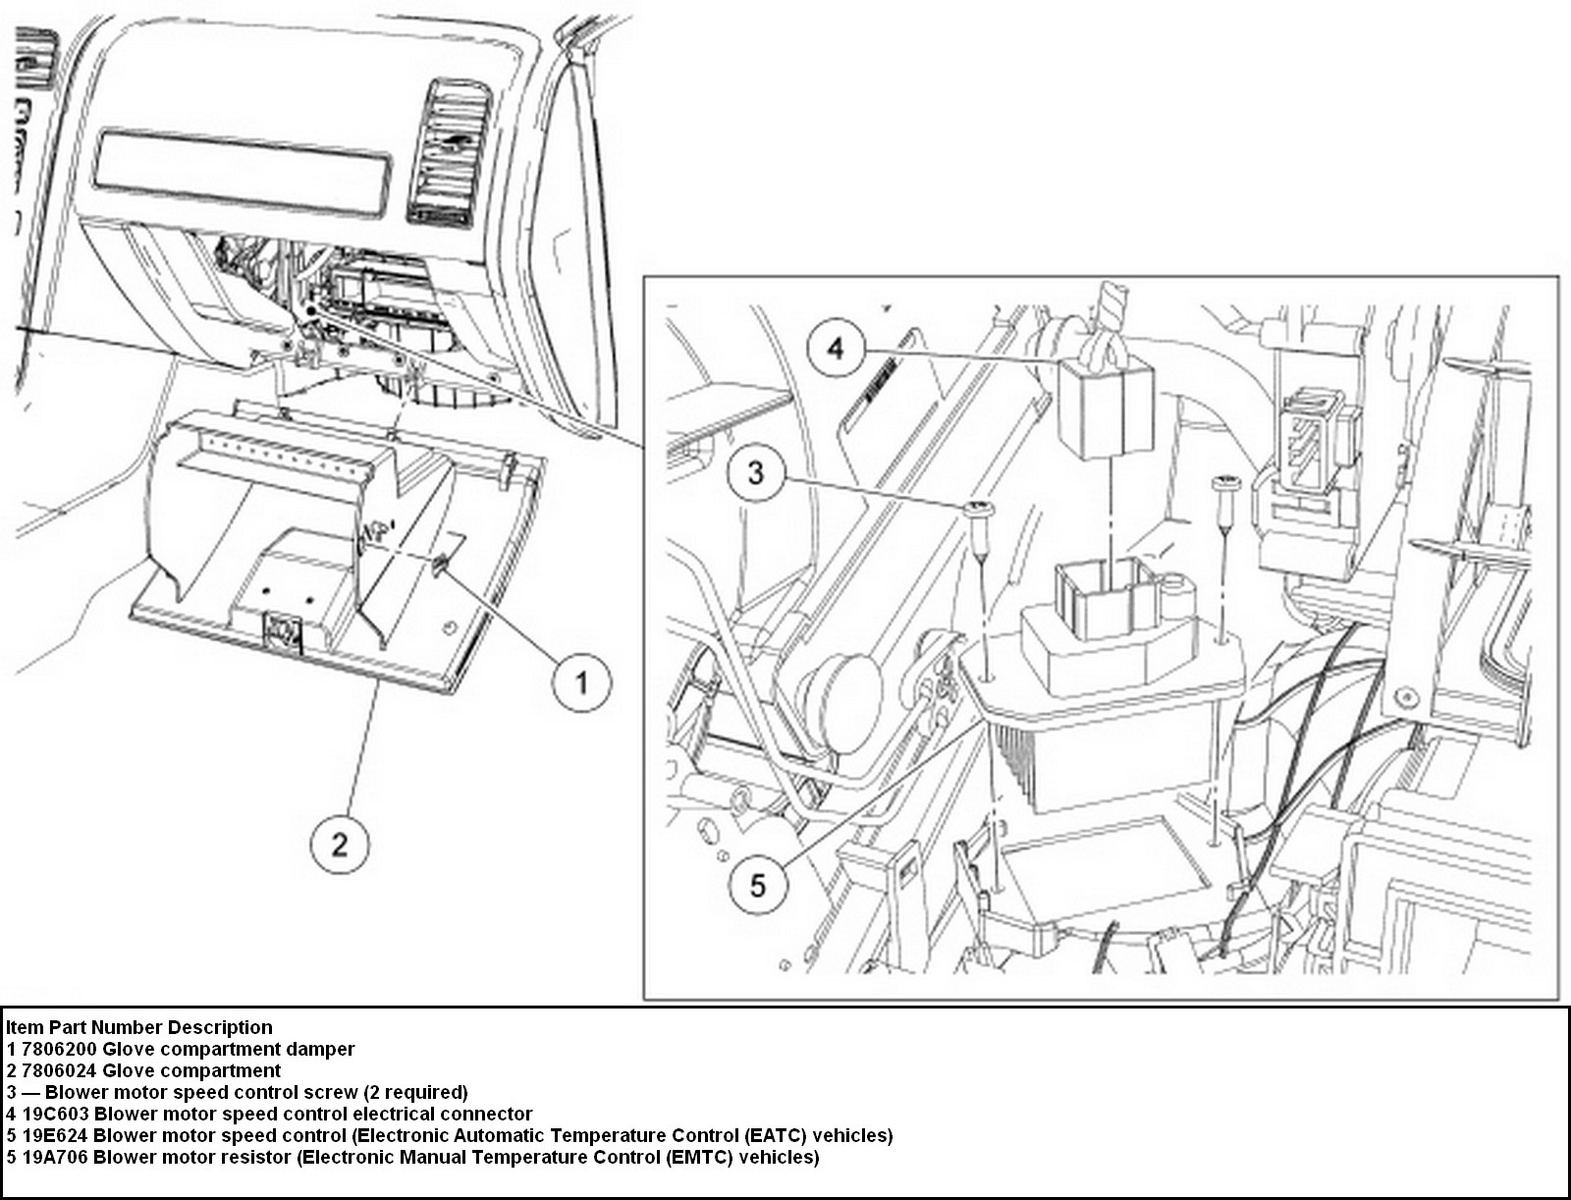 2006 Ford Focus Hvac Diagram Wiring Diagrams Instructions 2012 Compartment Fuse Box Interior Edge Questions How Do You Remove And Replaceinstall A Blower